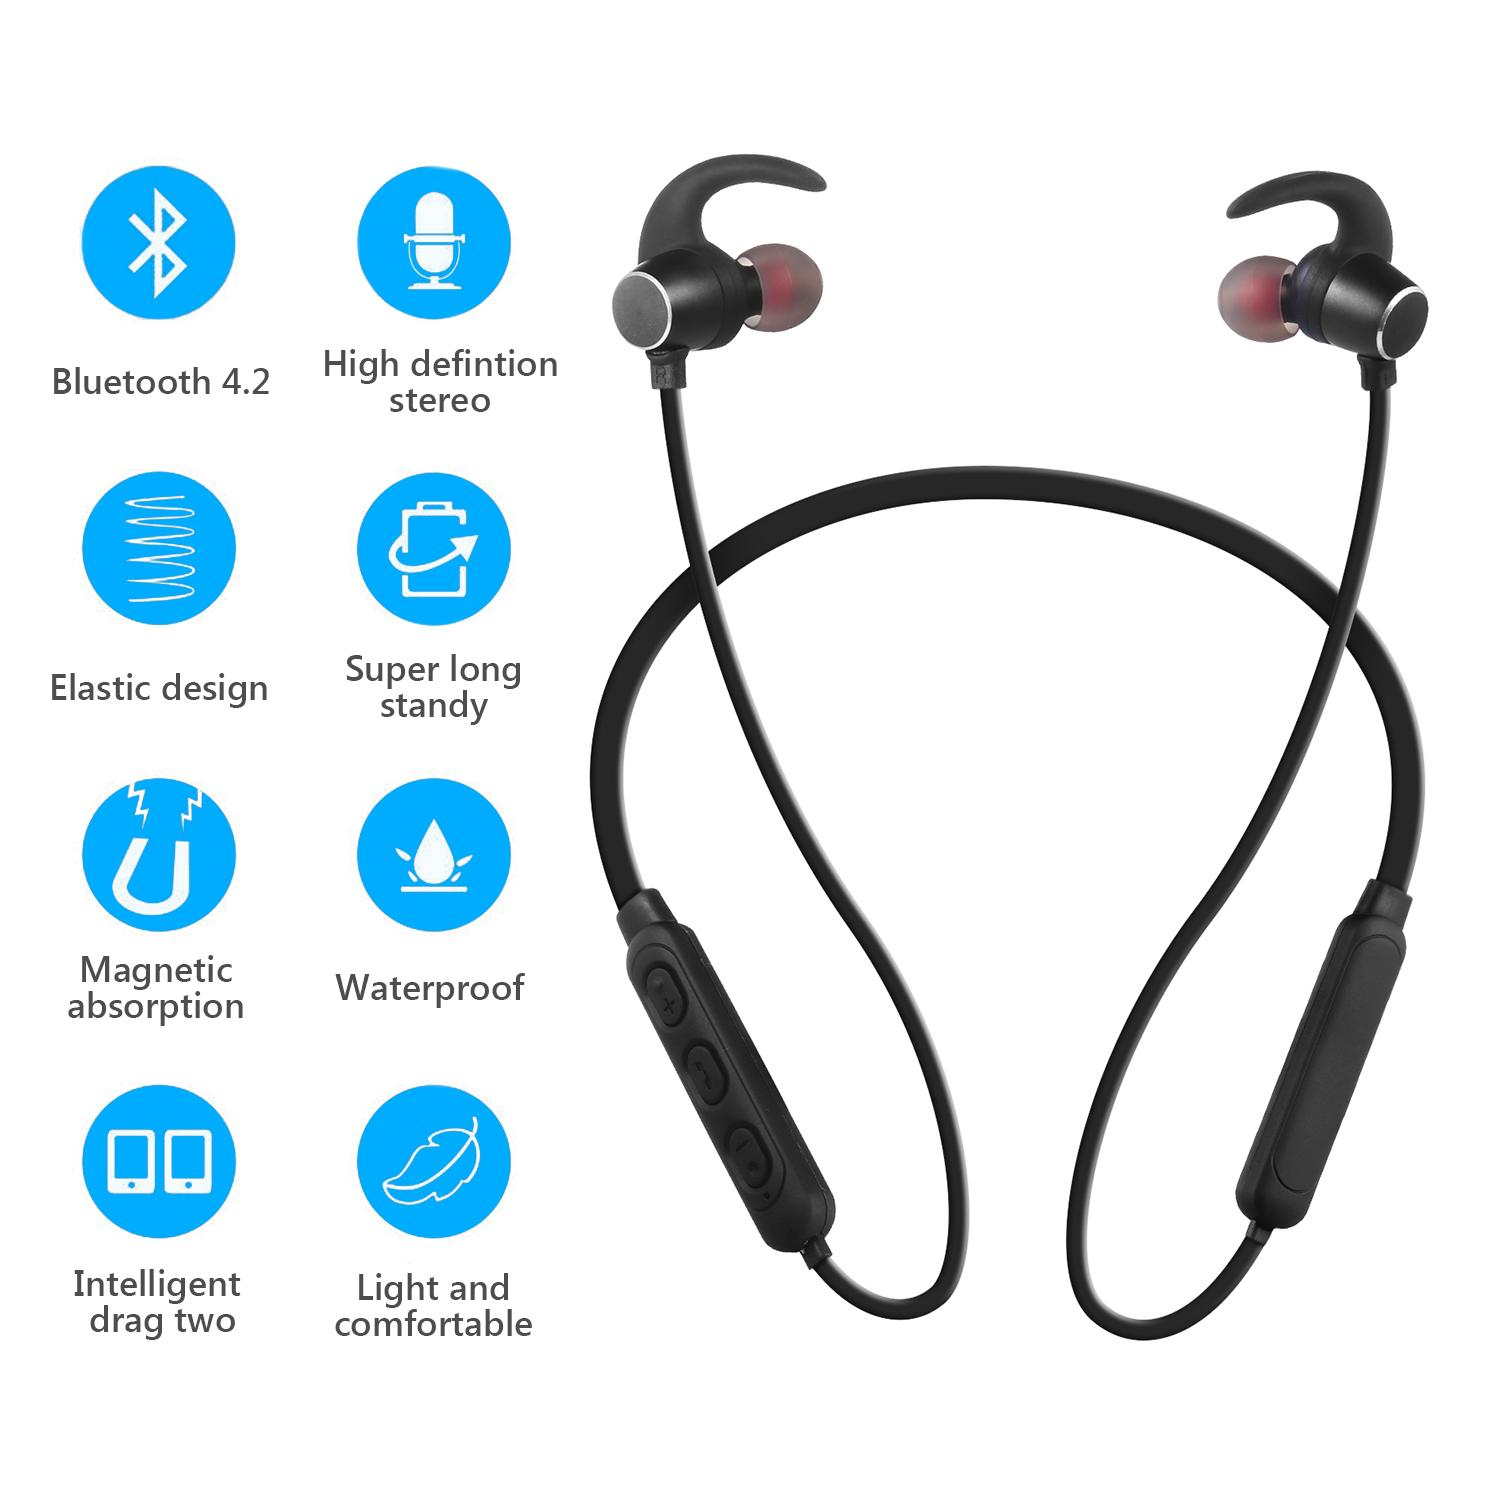 75fa0604f65 China. Bluetooth In Ear Neckband Earphone Wireless Sports Headphones  Magnetic Headset Handsfree with Microphone